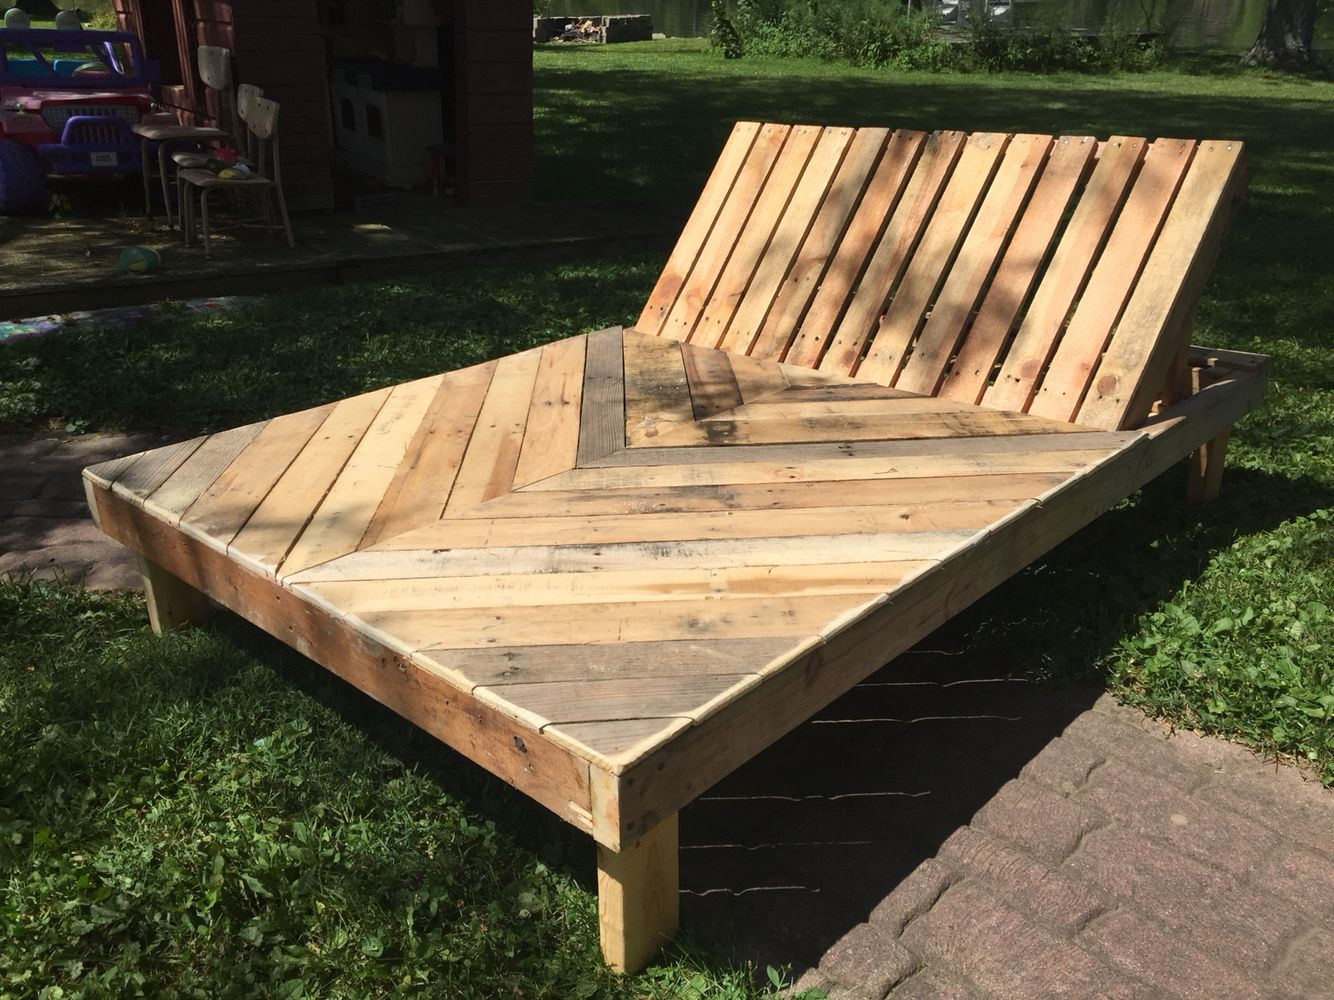 skid furniture ideas. Chaise Lounge Made From Upcycled Skids / Pallets Skid Furniture Ideas T